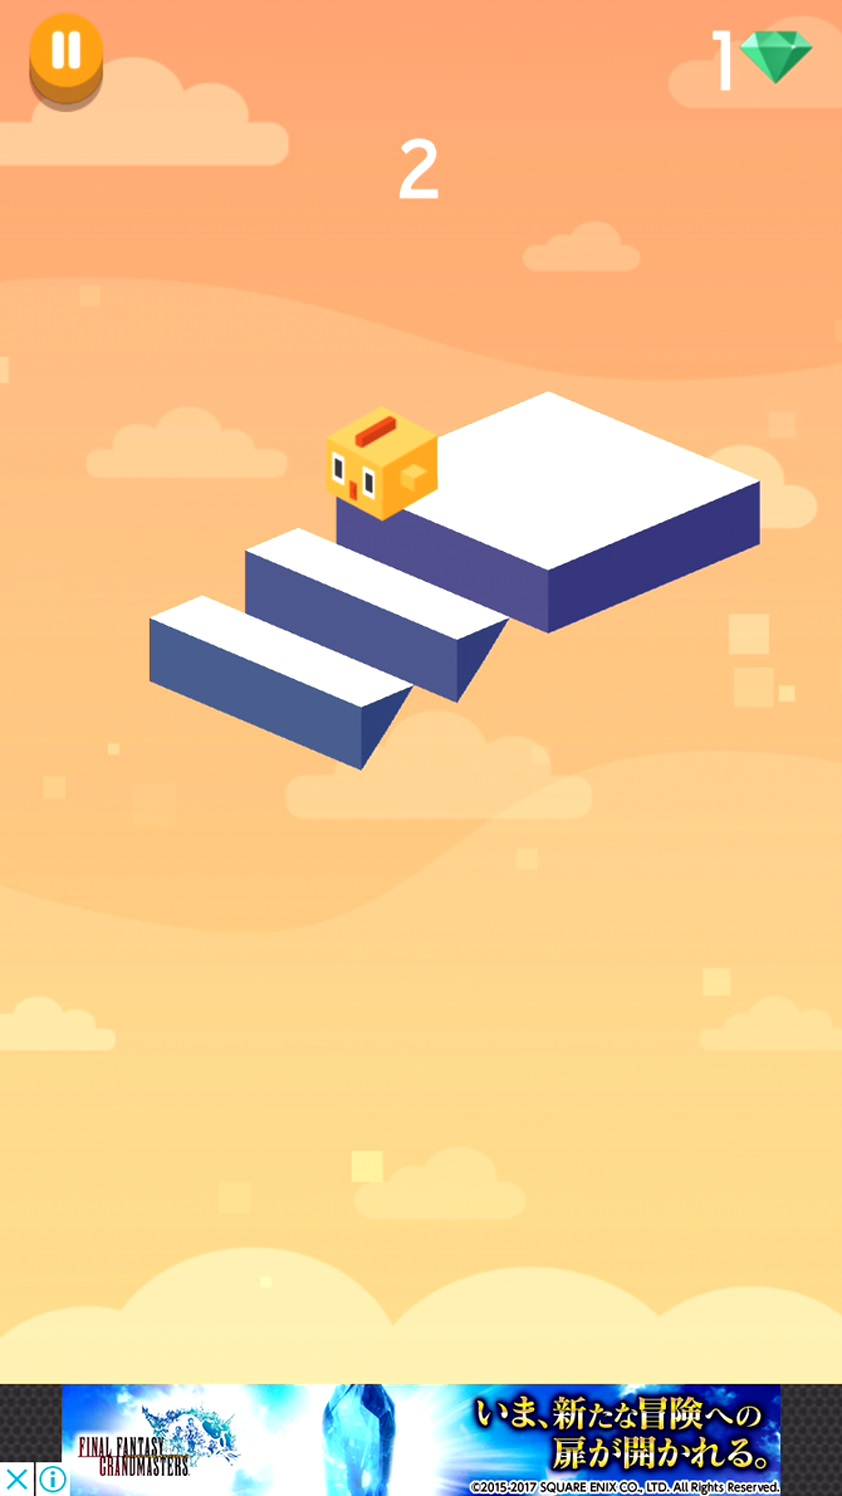 Chickens Jump Stairs androidアプリスクリーンショット1